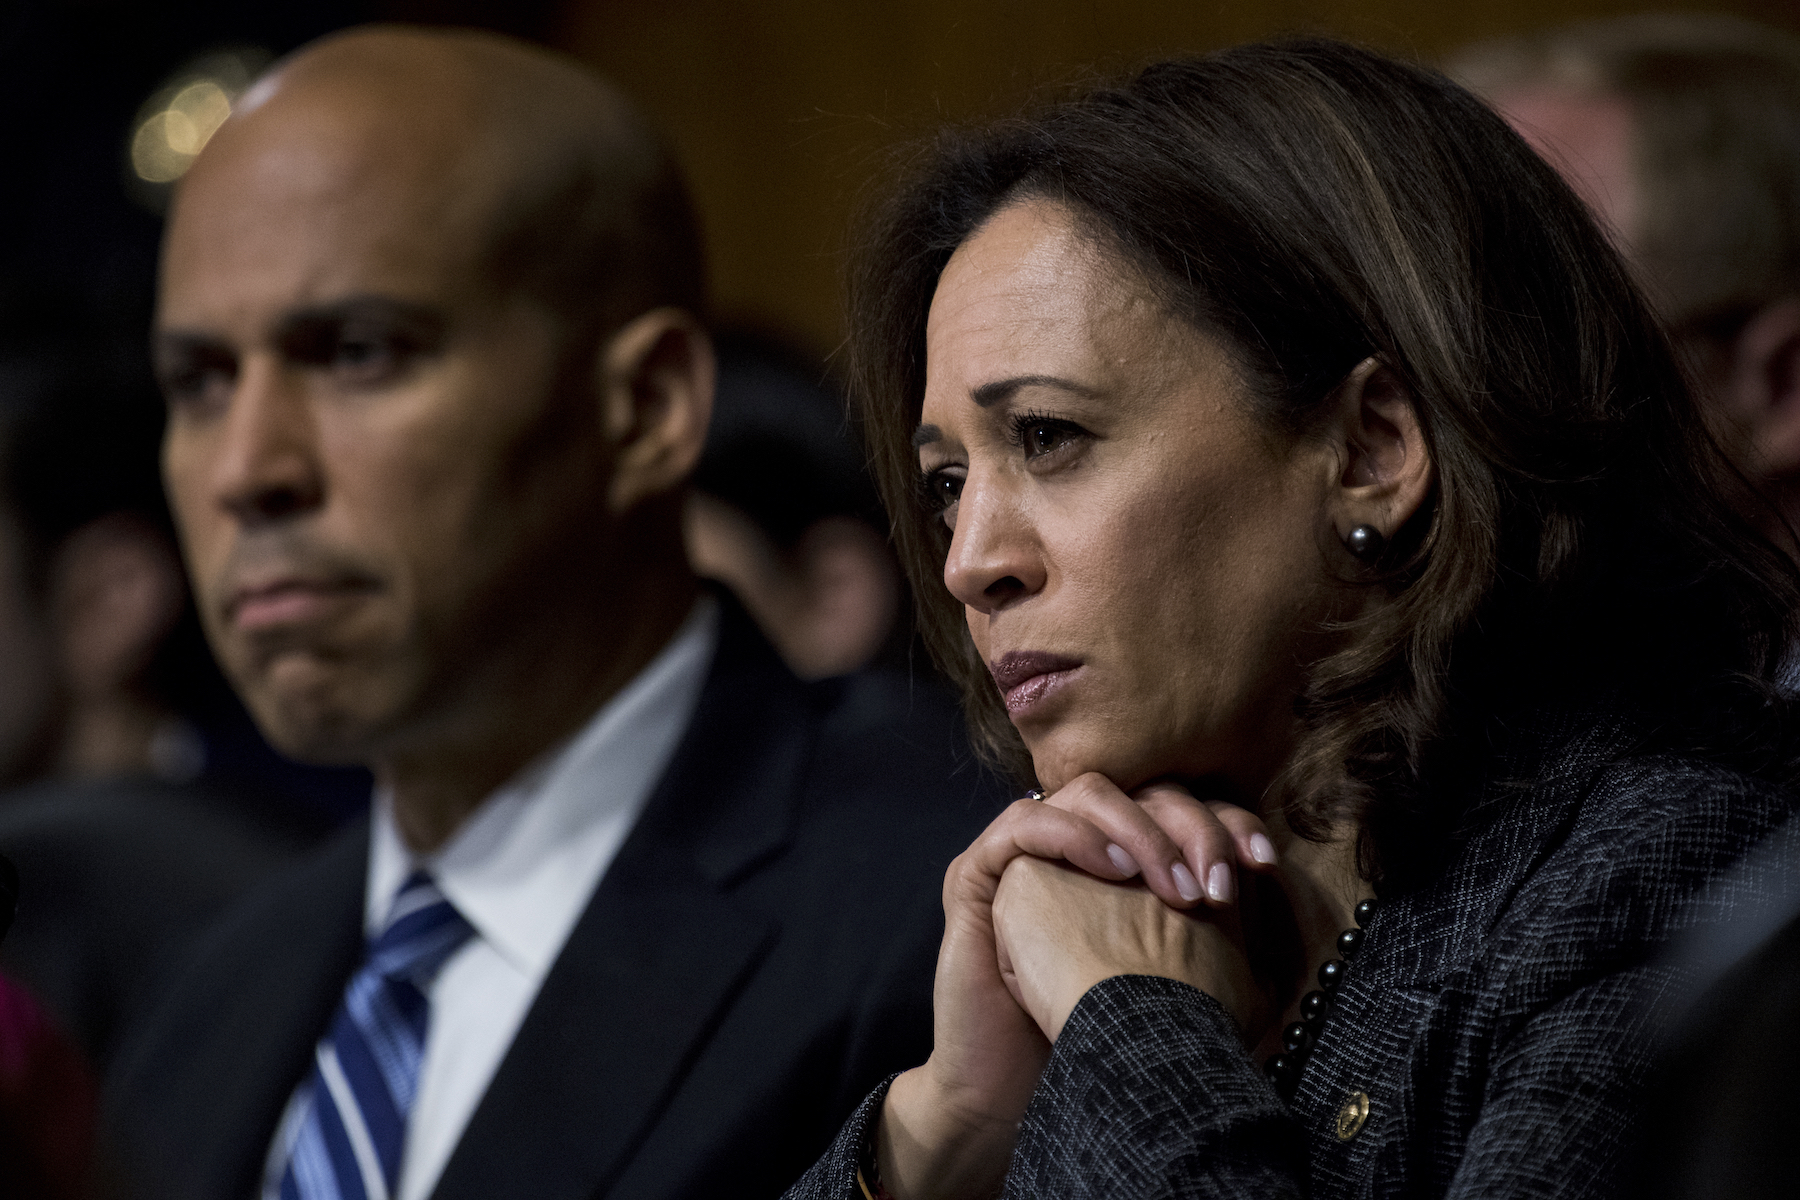 "<div class=""meta image-caption""><div class=""origin-logo origin-image ap""><span>AP</span></div><span class=""caption-text"">Sen. Cory Booker and Sen. Kamala Harris listen as  Dr. Christine Blasey Ford testifies during the Senate Judiciary Committee hearing on the nomination of Brett M. Kavanaugh (Tom Williams/CQ Roll Call/Pool)</span></div>"